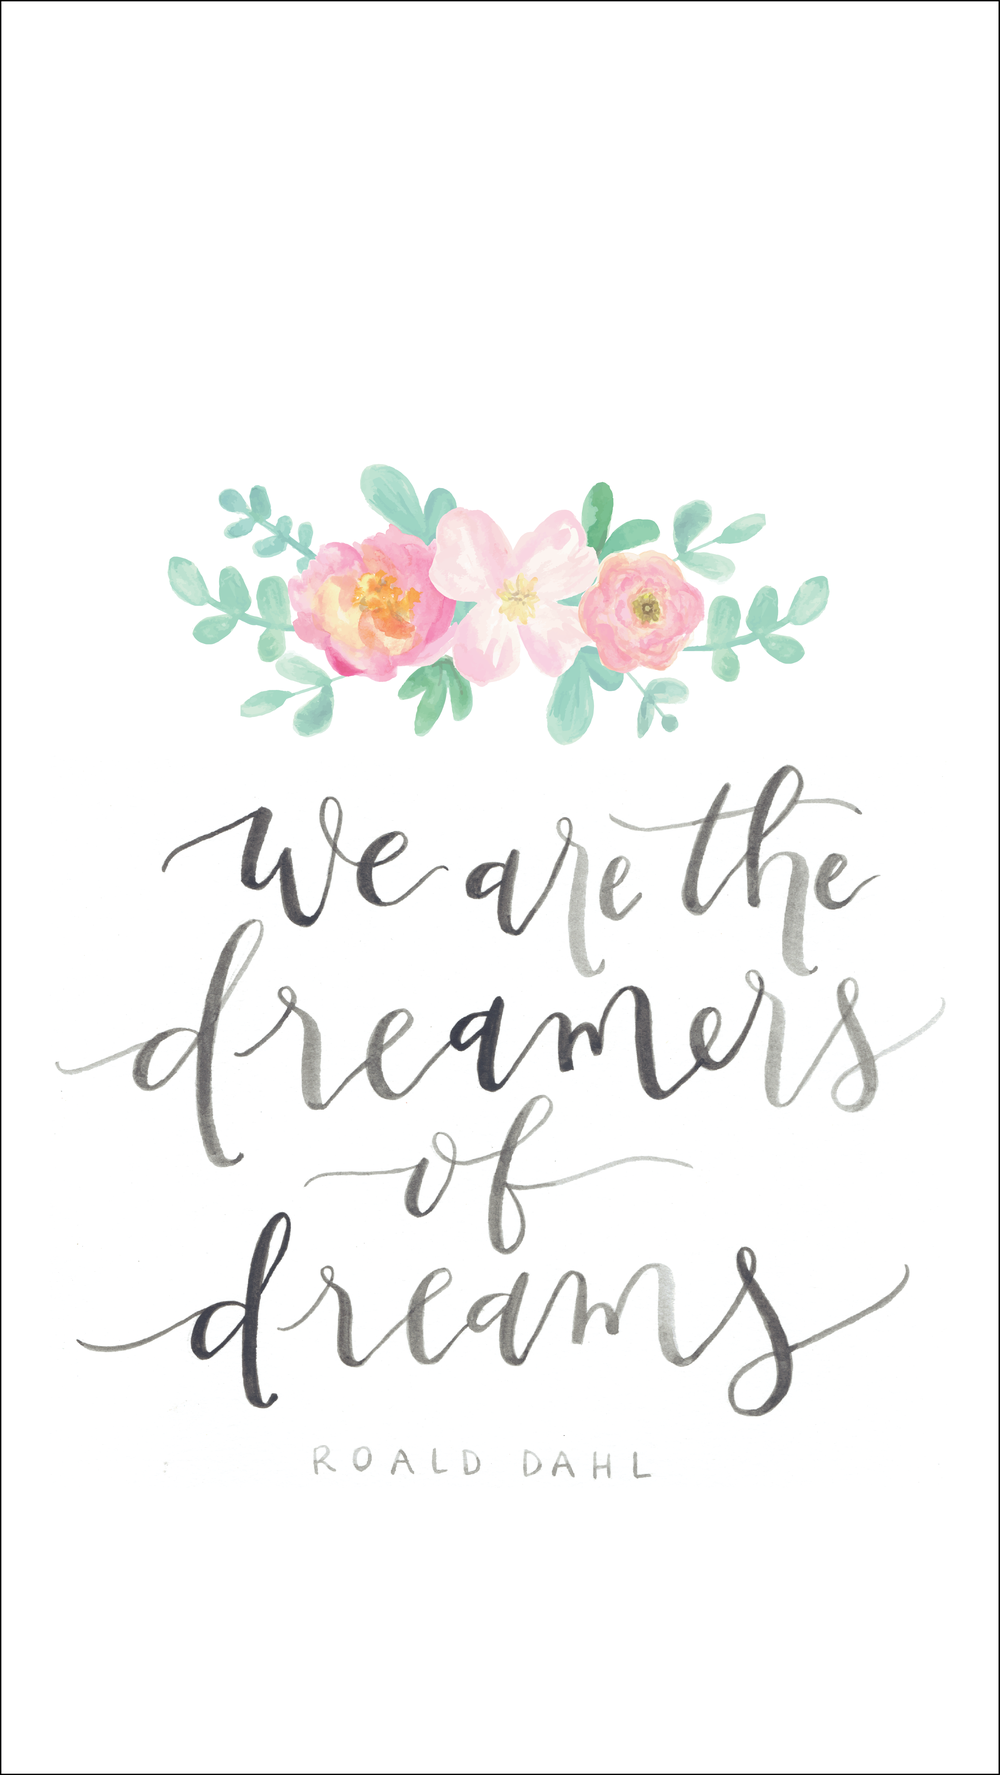 dreamers_website.png